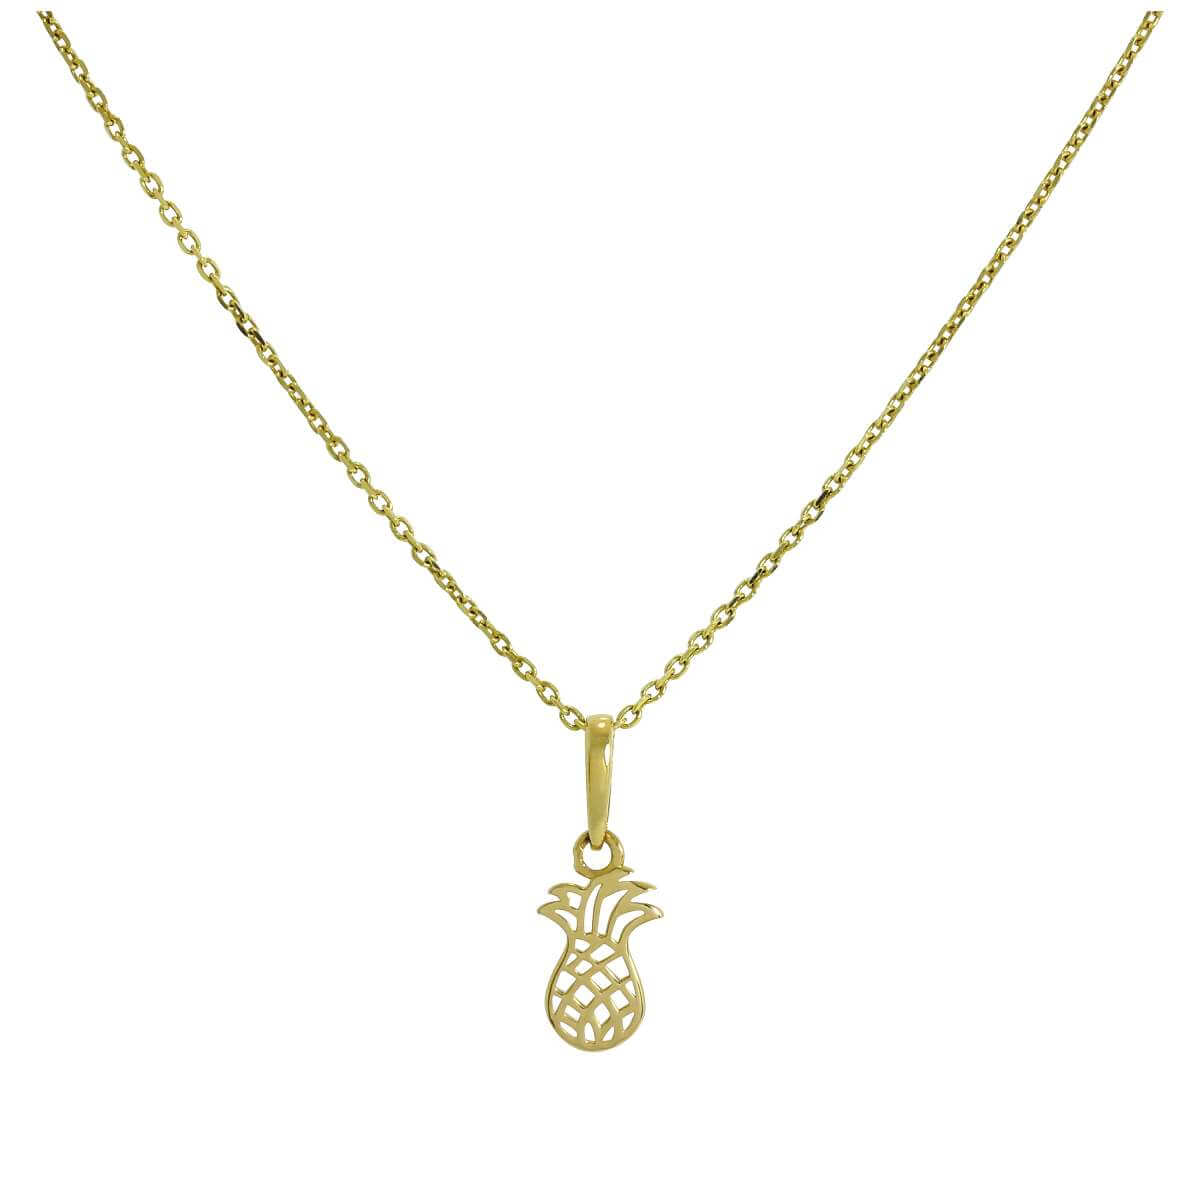 9ct Gold Pineapple Pendant with Cut Out Details on Chain 16 - 20 Inches